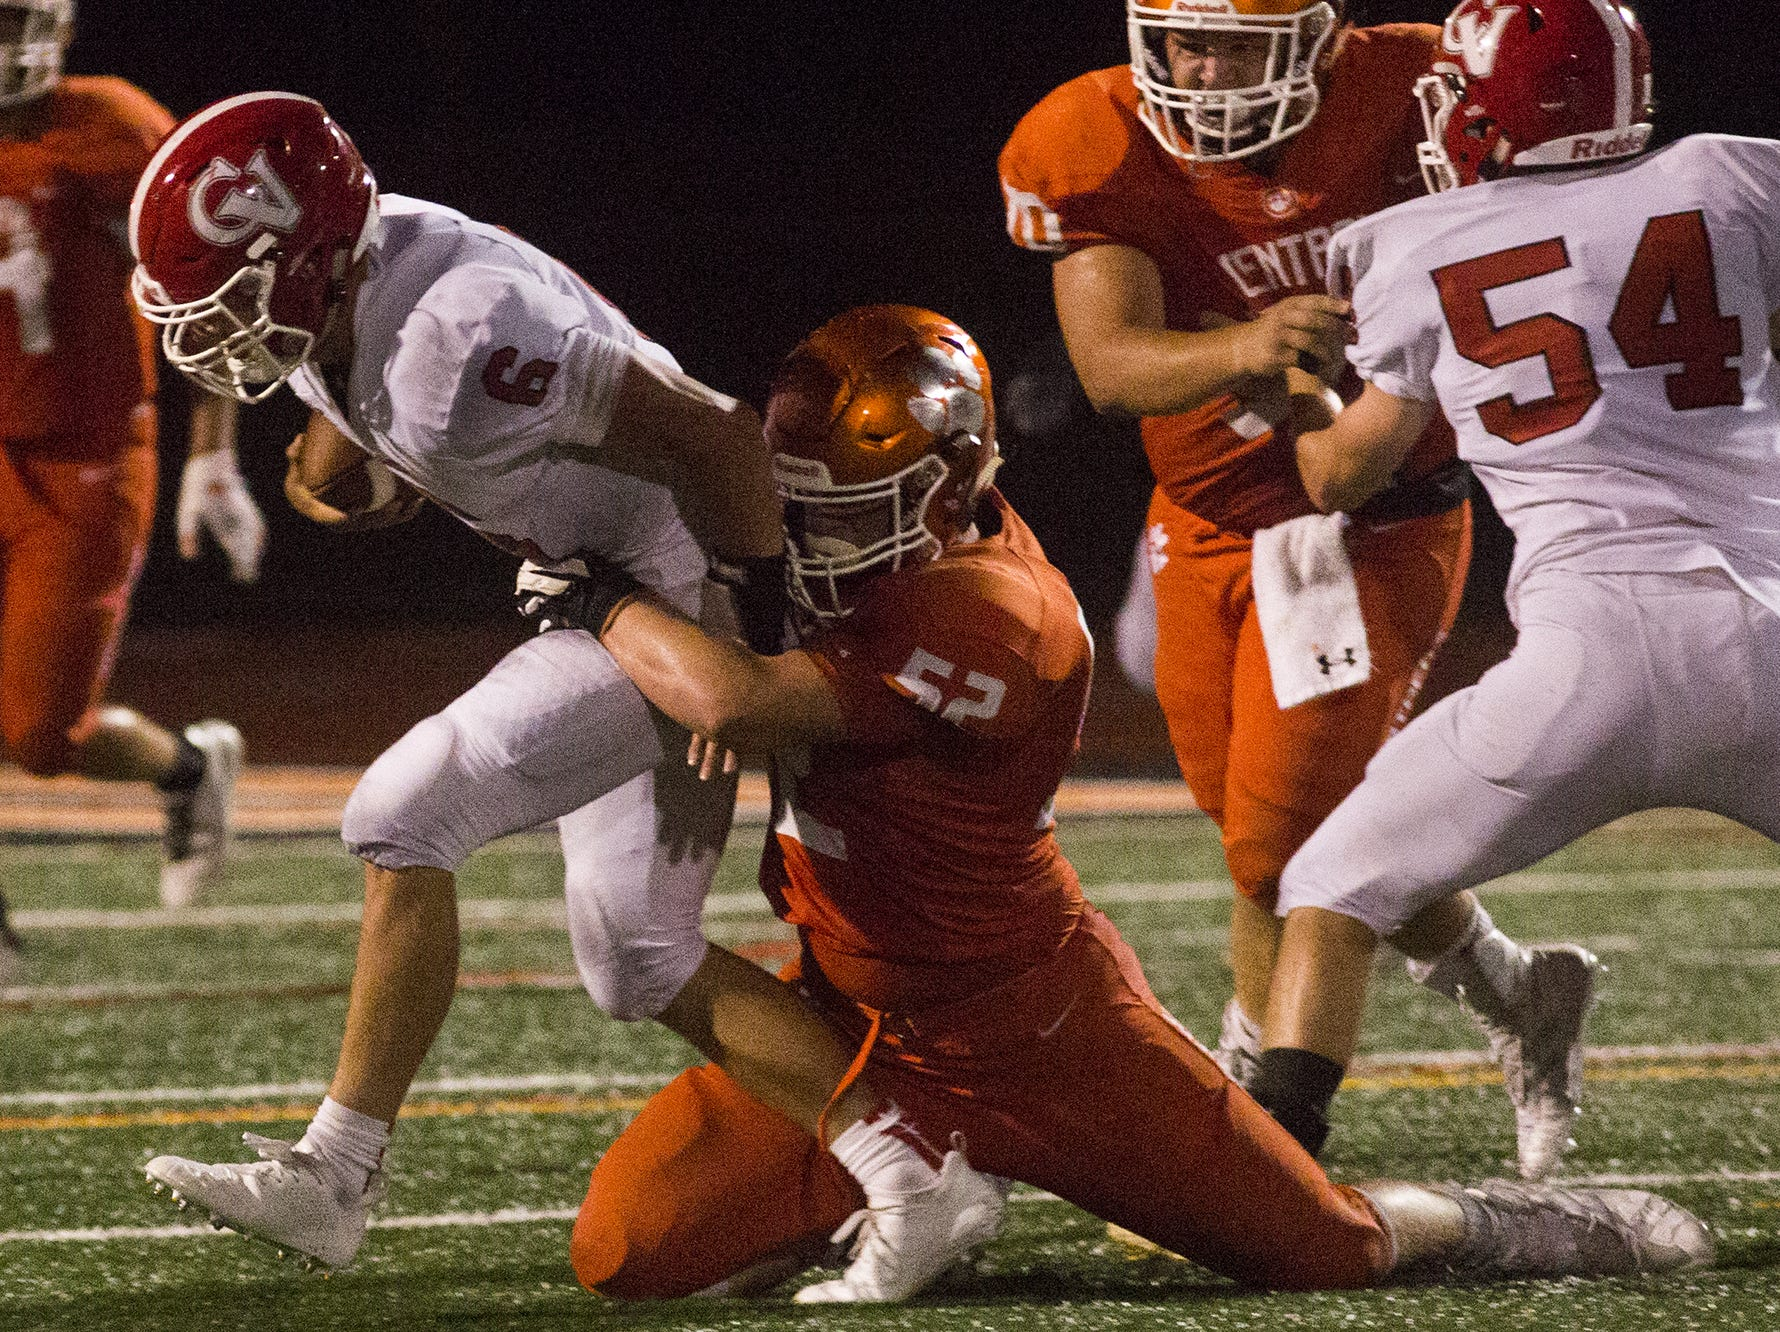 Cumberland Valley quarterback Jared Plessinger is sacked by Central York's Ian McNaughton. Central York defeats Cumberland Valley 31-14 in football at Central York High School in Springettsbury Township, Friday, August 31, 2018.